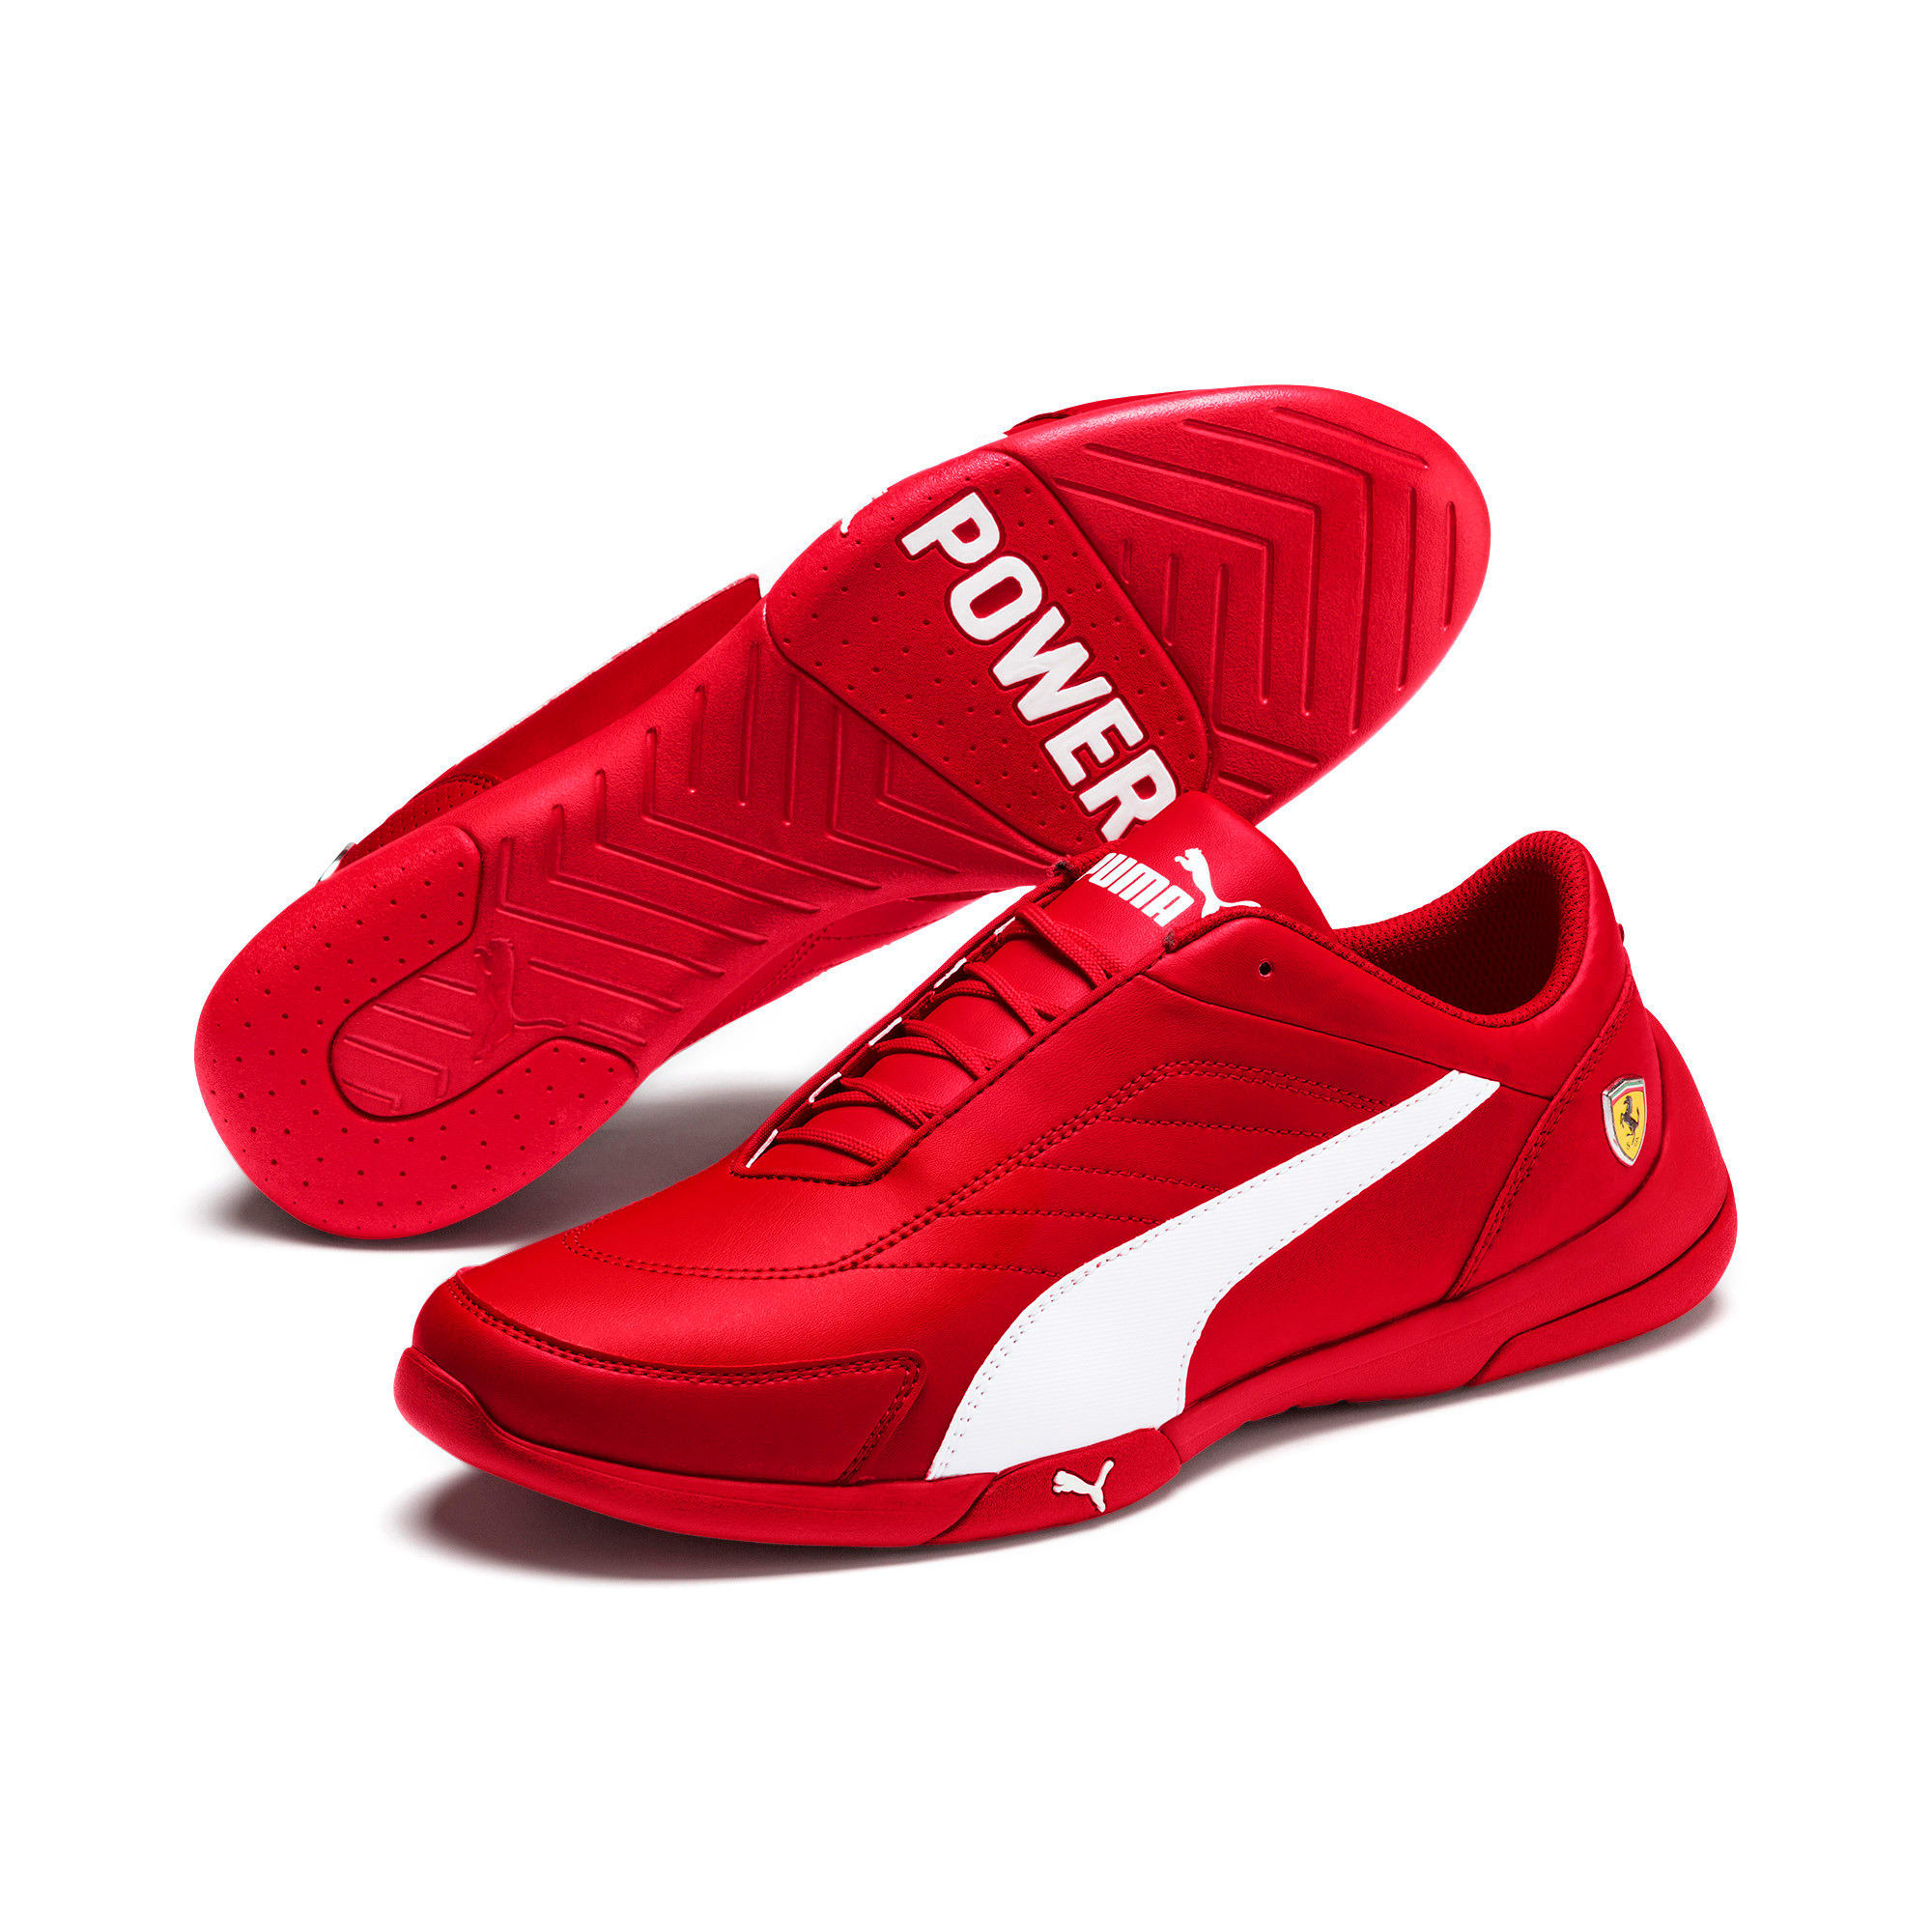 Thumbnail 3 of Scuderia Ferrari Kart Cat III Shoes, Rosso Corsa-White, medium